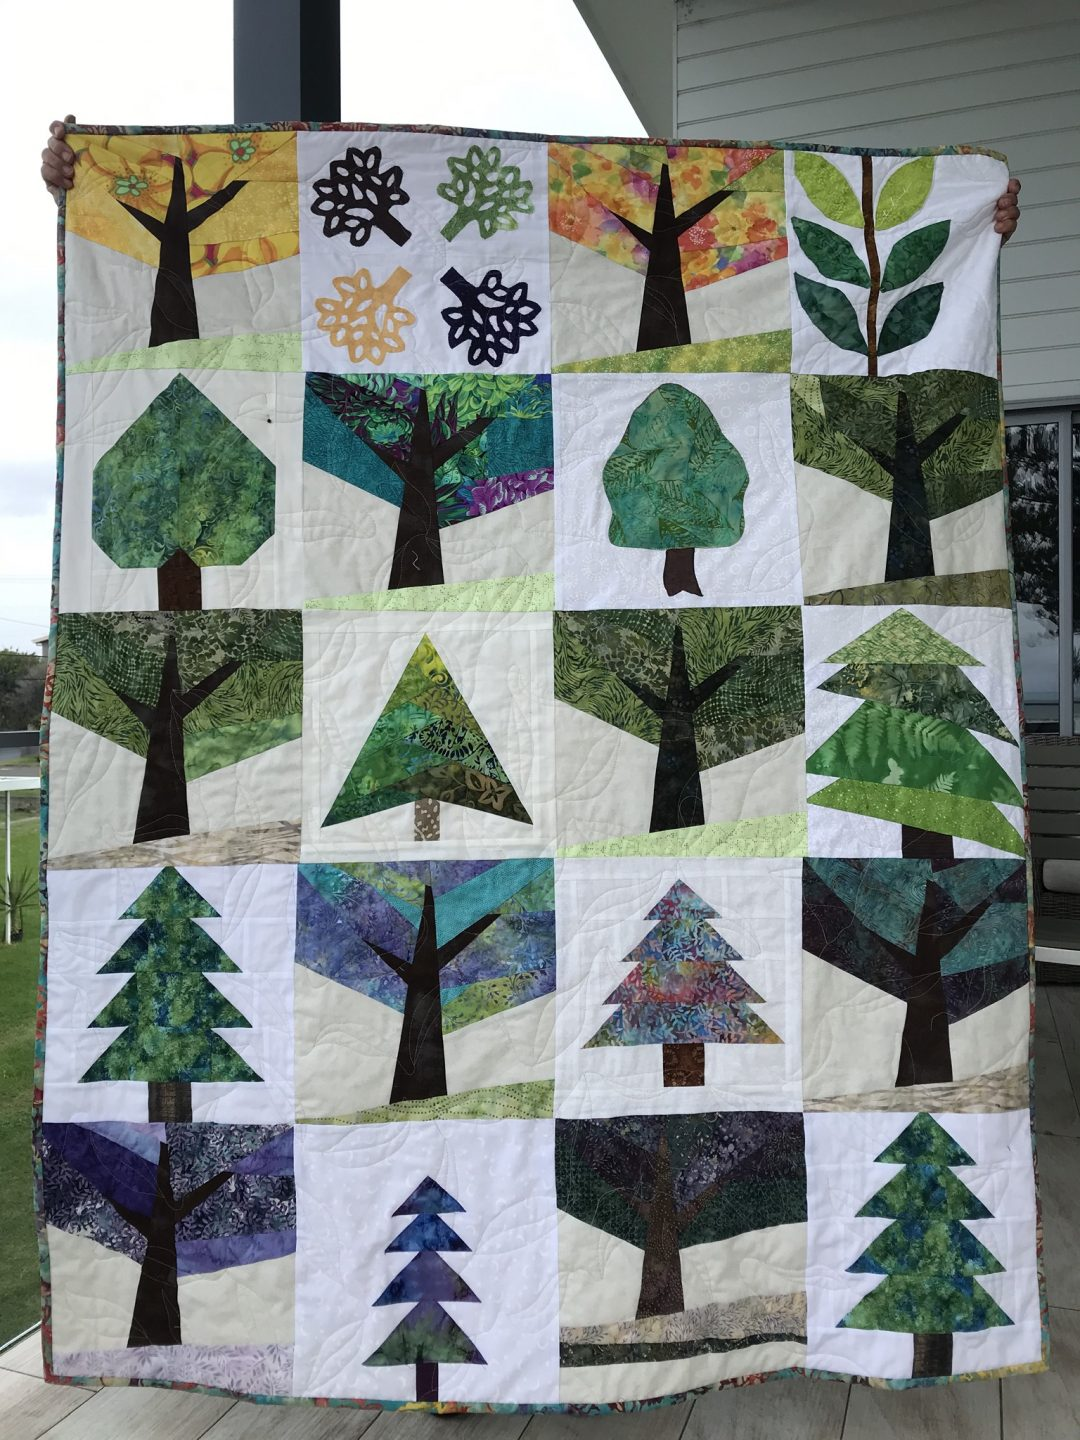 A full quilt being held up. Each panel shows a different tree in a different season. Colours are green, blue, yellow, black and white.